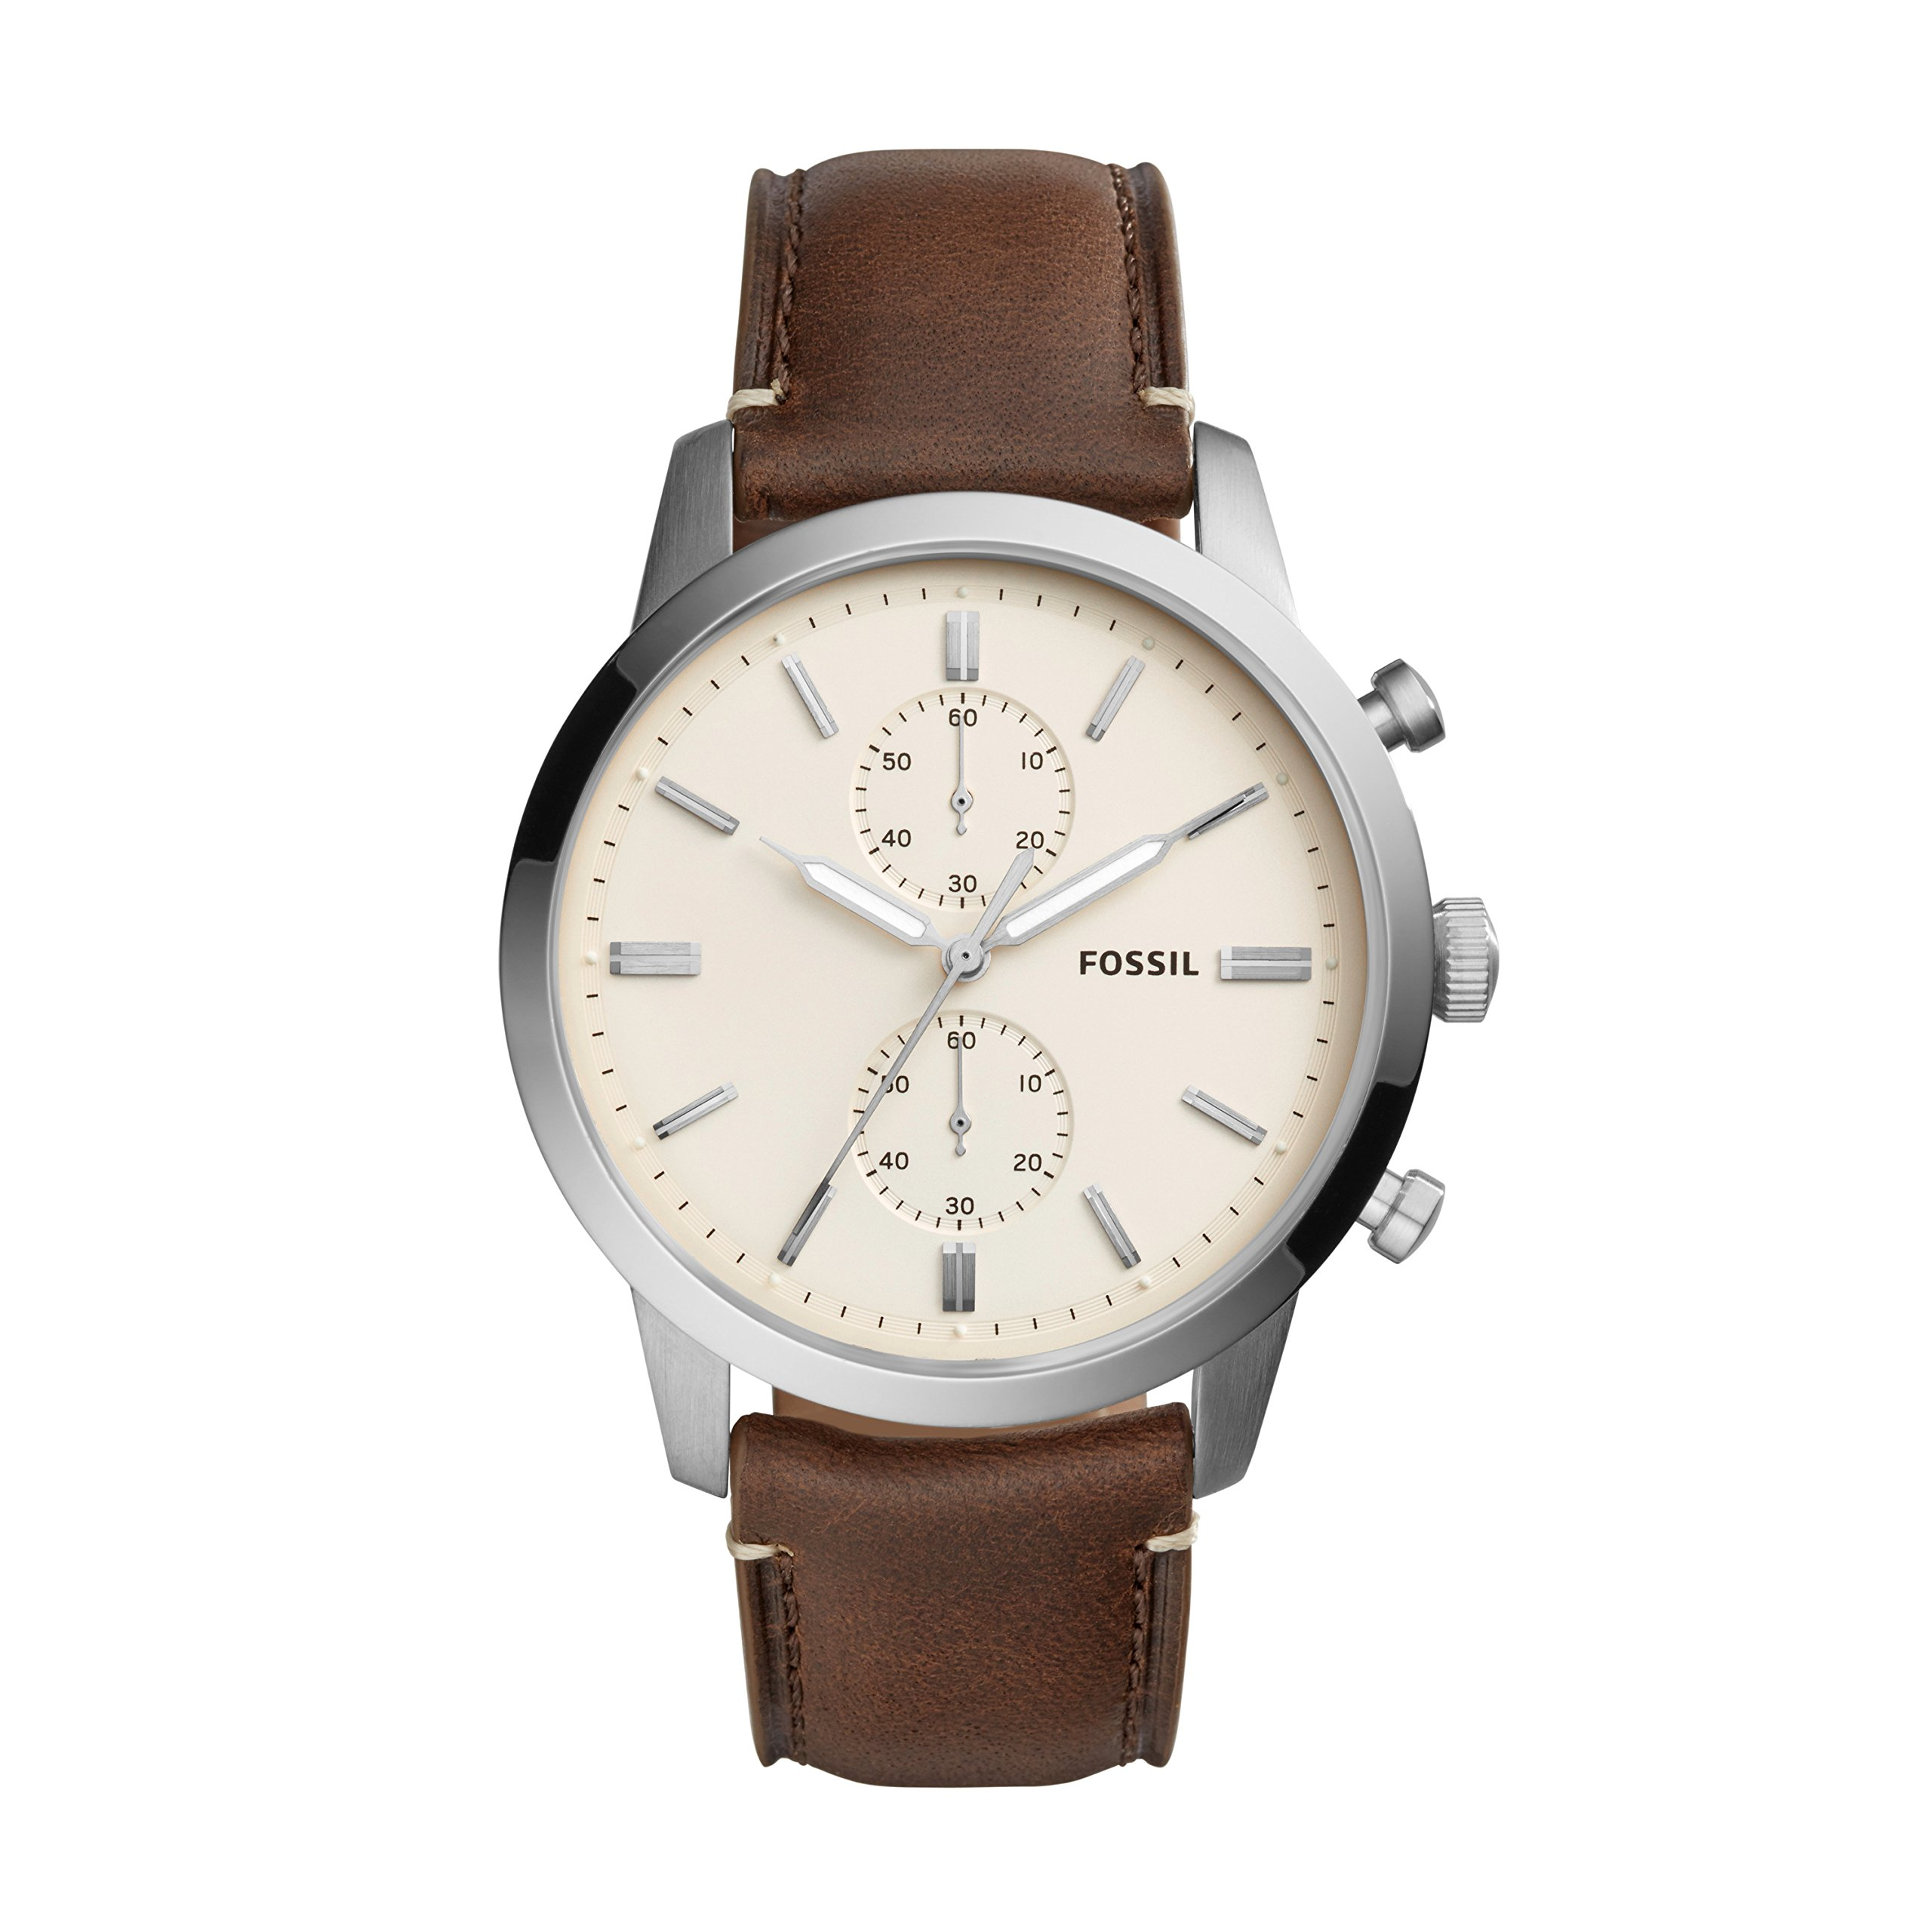 Fossil Men's Analogue Quartz Watch with Leather Strap FS5350